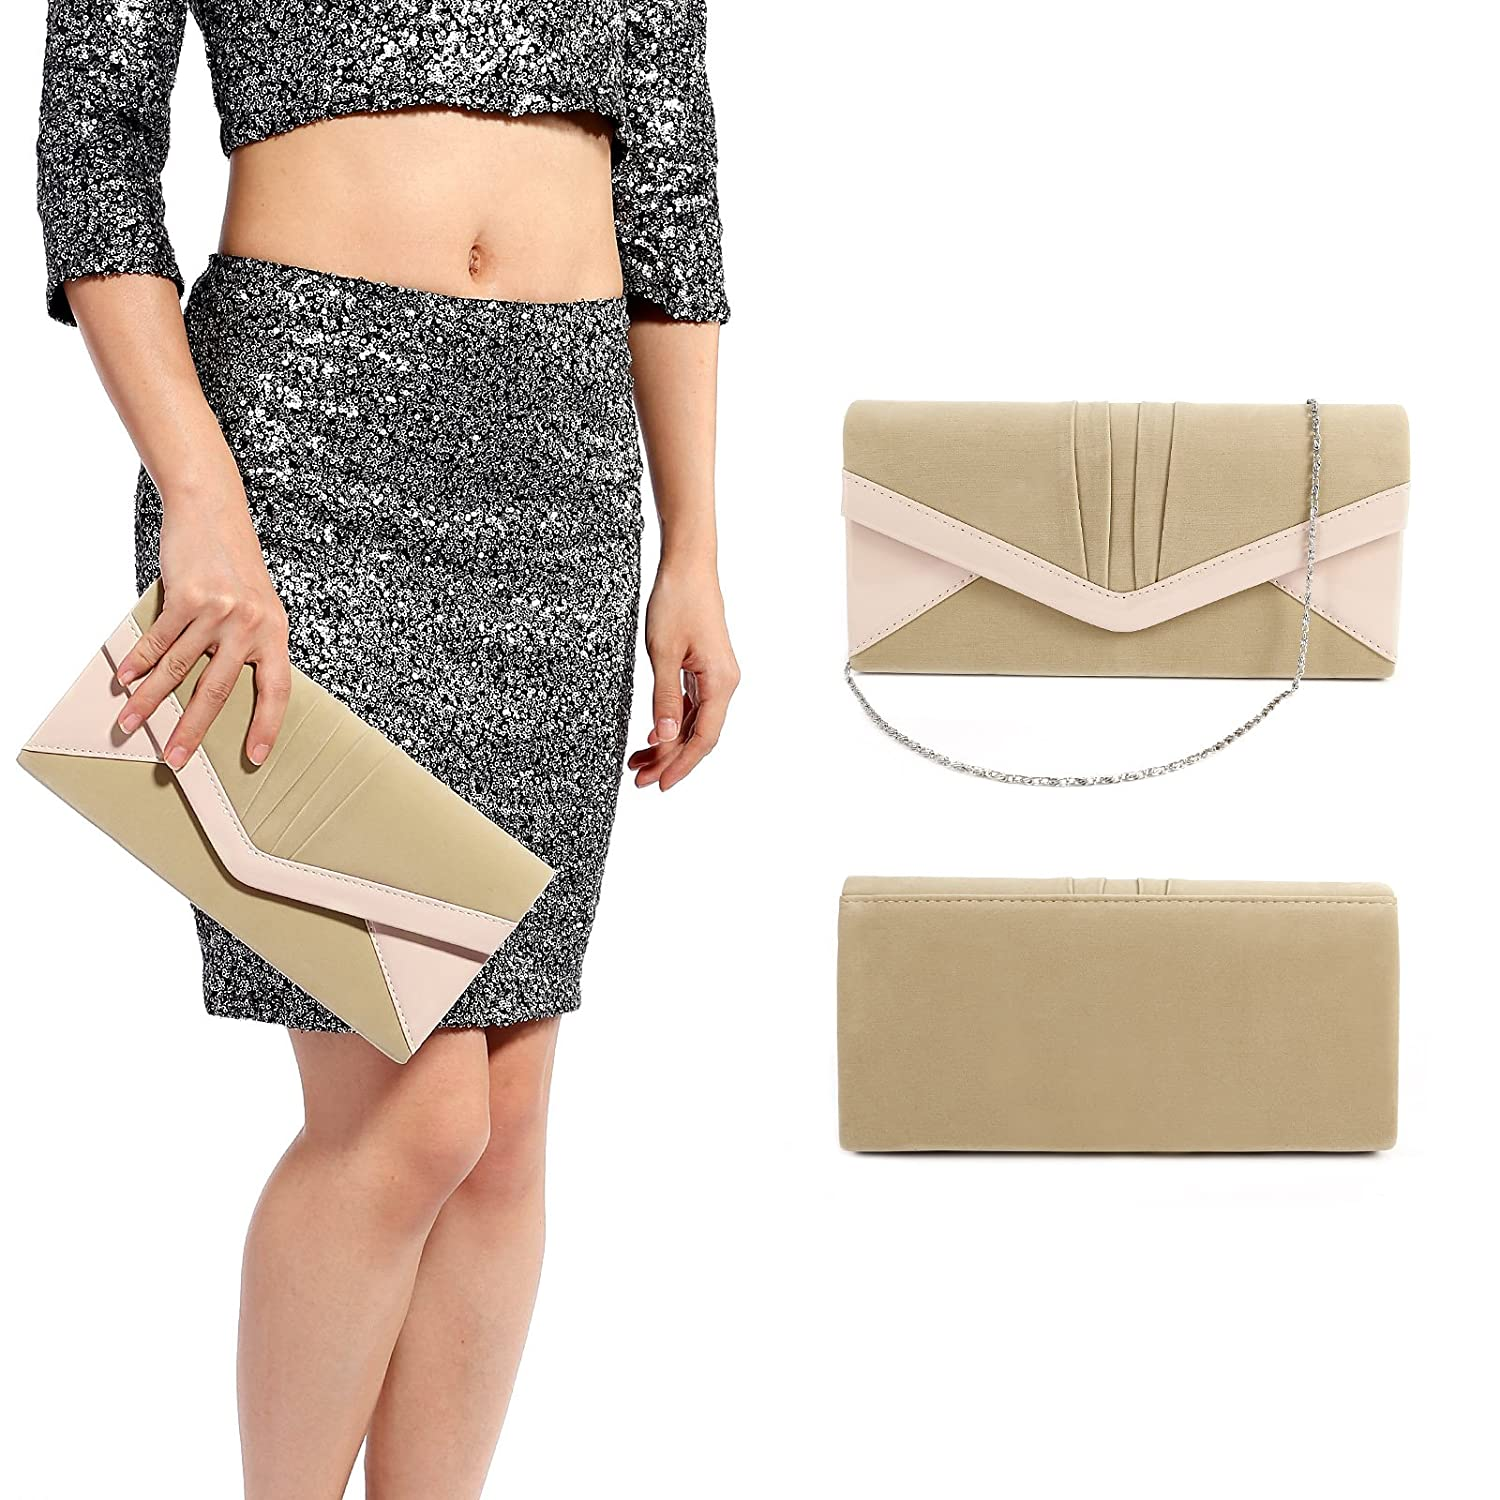 Anladia Contrast Color Faux Leather Trim Velvet Clutch Structured Chain Shoulder Handbag: Handbags: Amazon.com